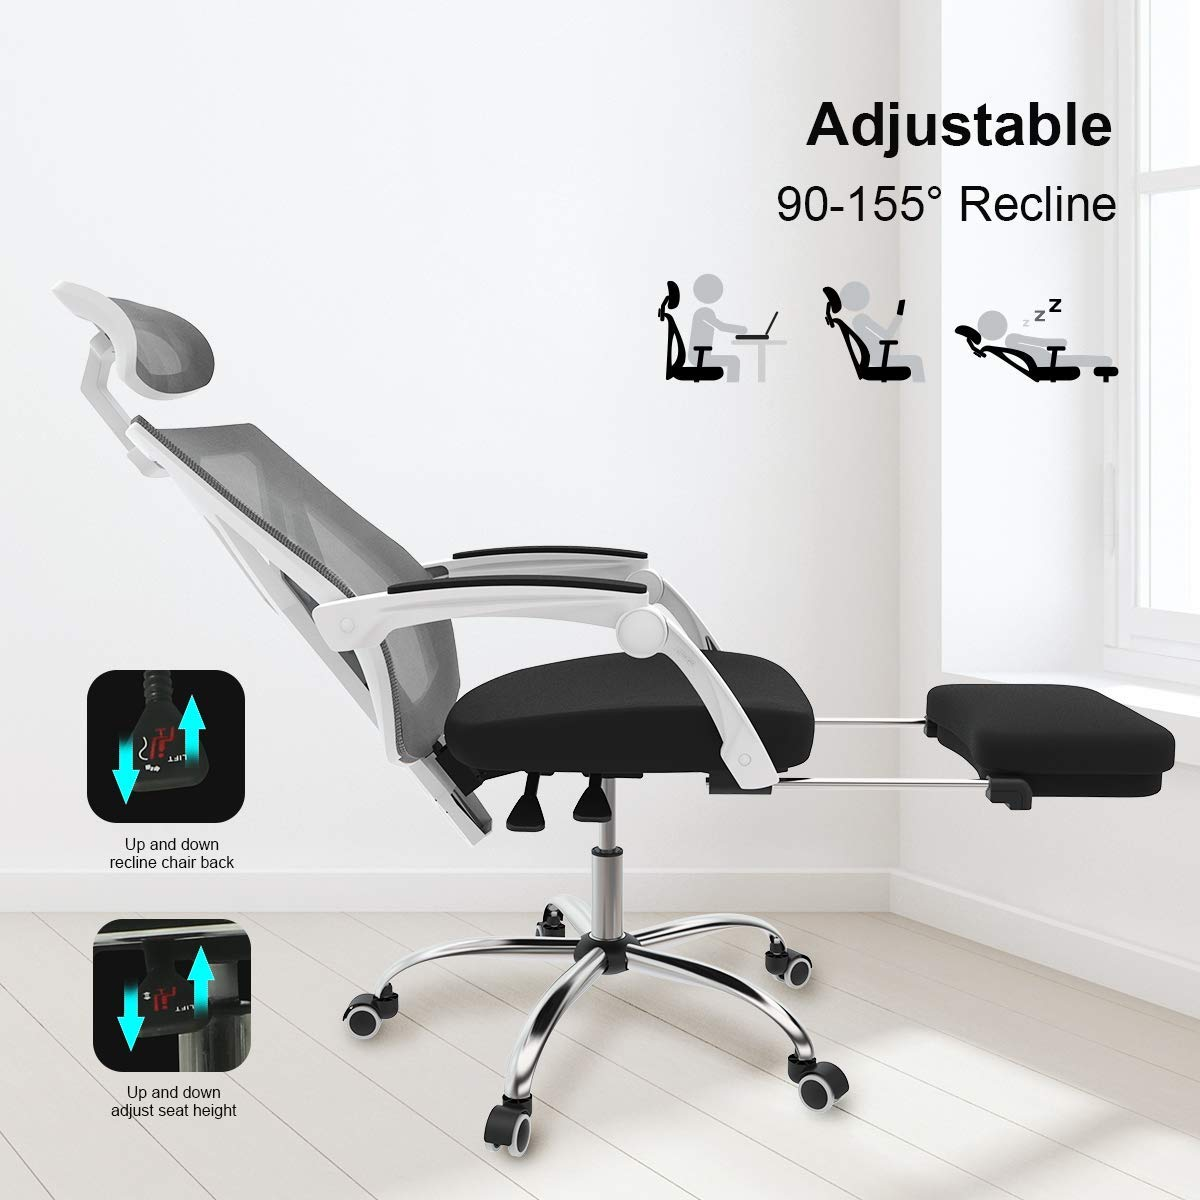 Full Reclining Office Chair 3